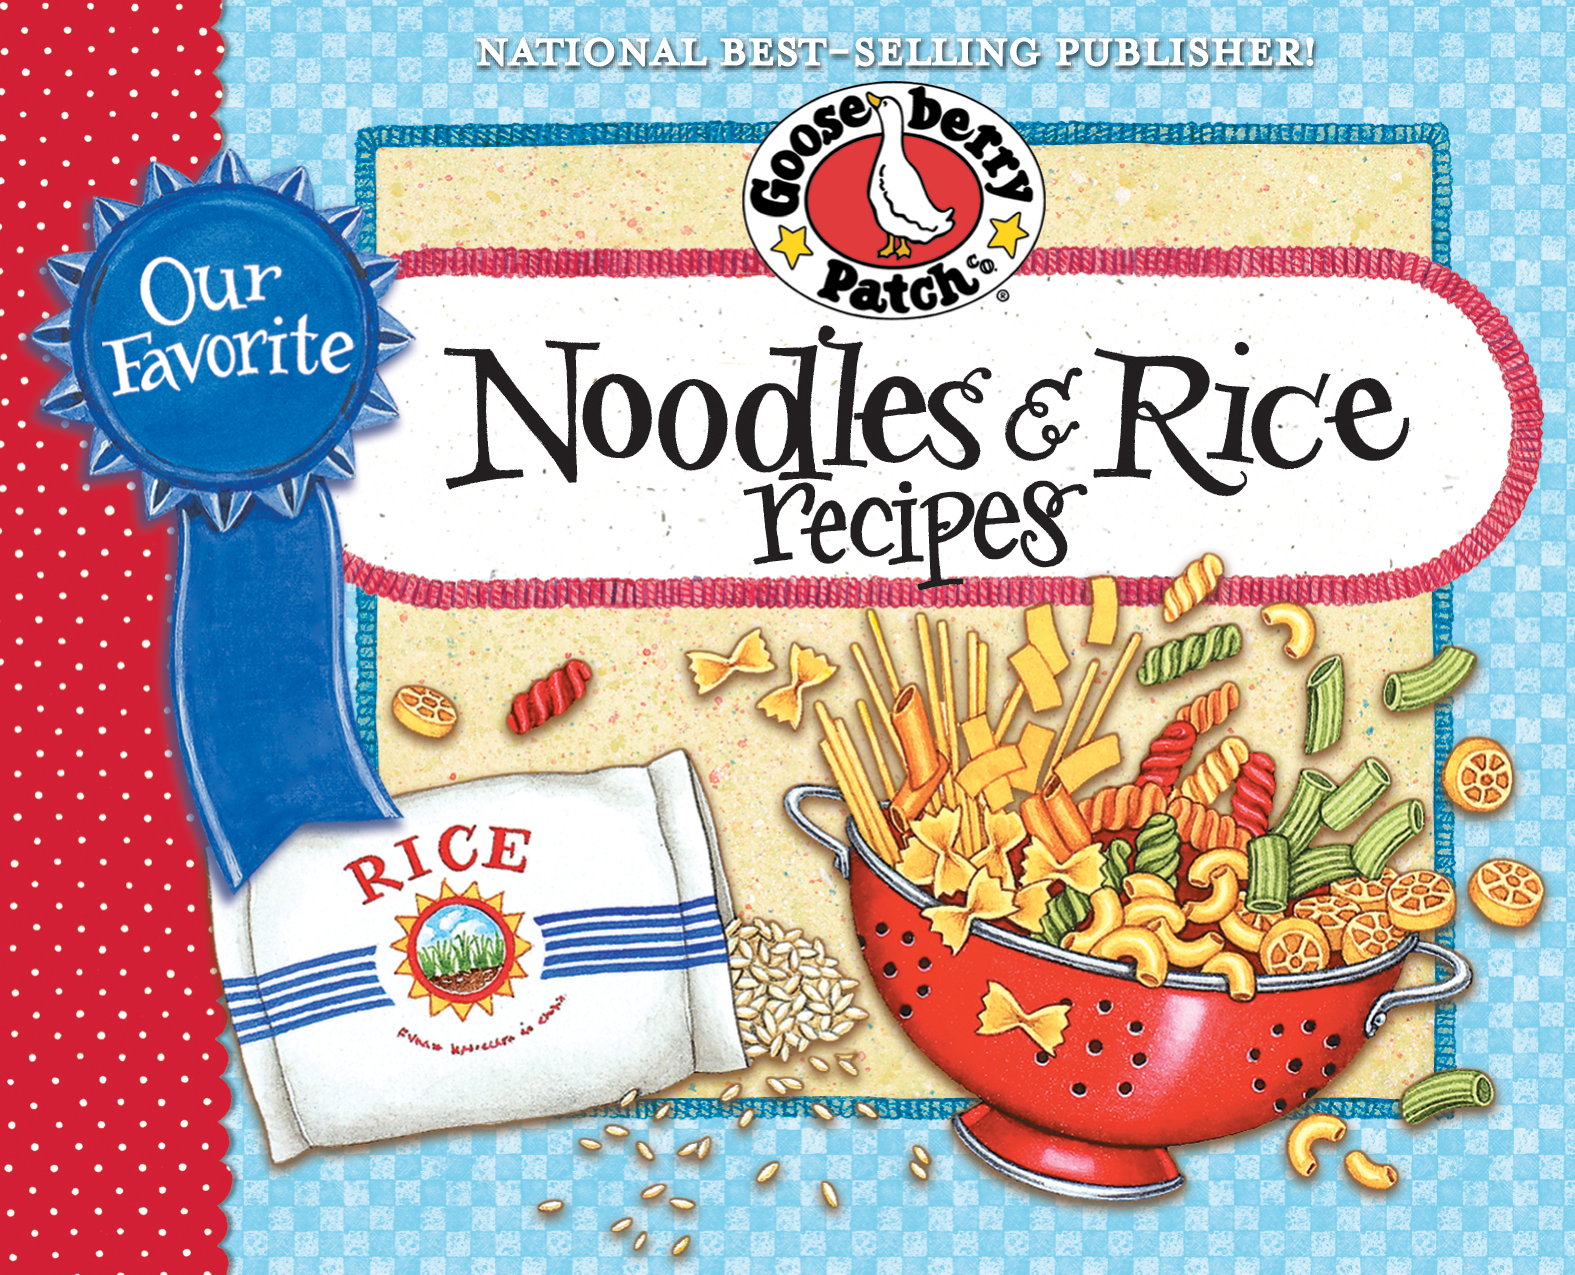 Our Favorite Noodle & Rice Recipes Cookbook: A bag of noodles, a box of rice.we've got over 60 tasty, thrifty ways to fix them!